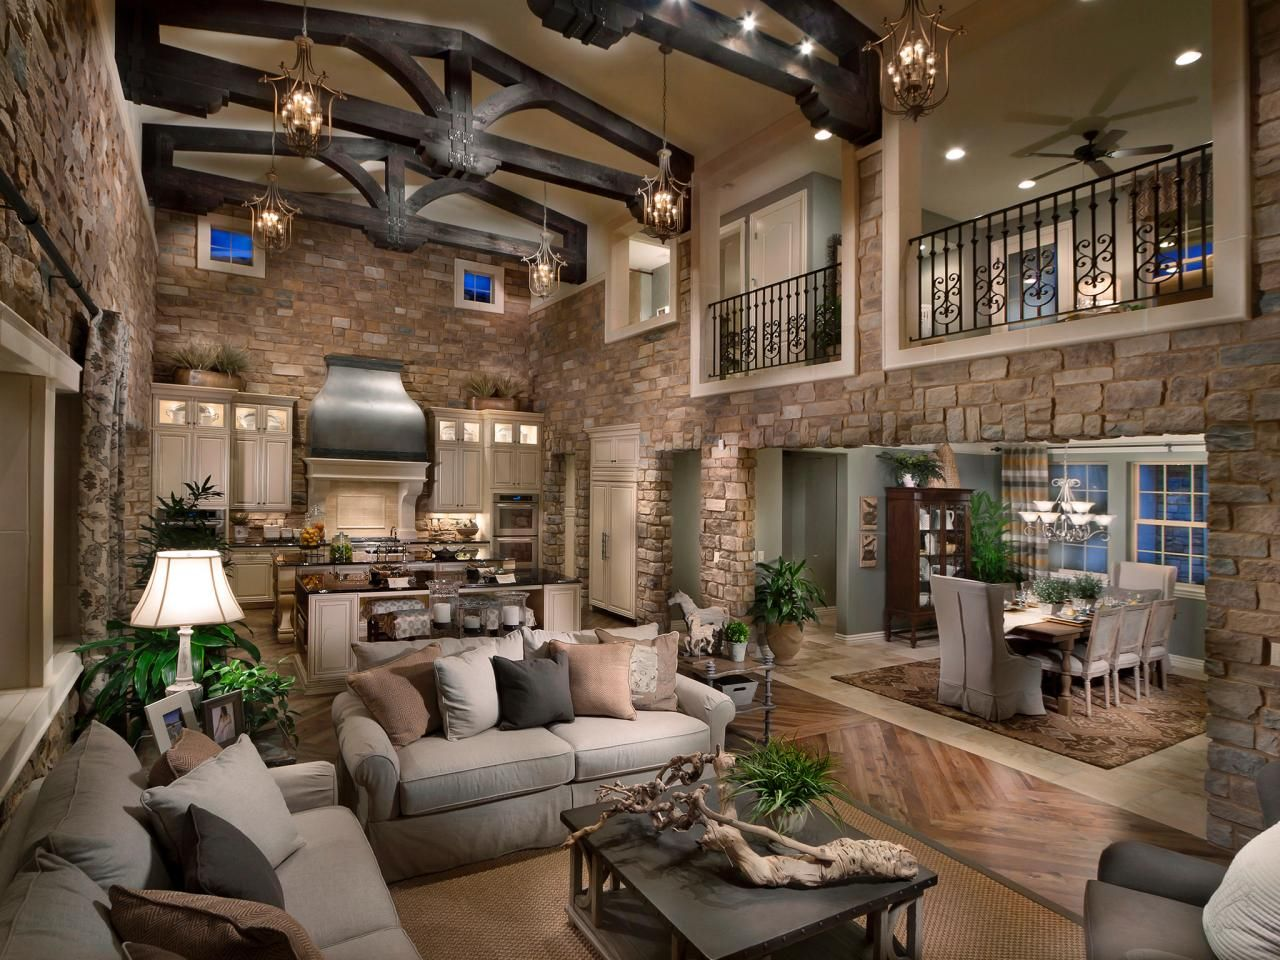 This Rustic Living Room And Kitchen Is A Magnificent Space That Has Stone Walls Vaulted